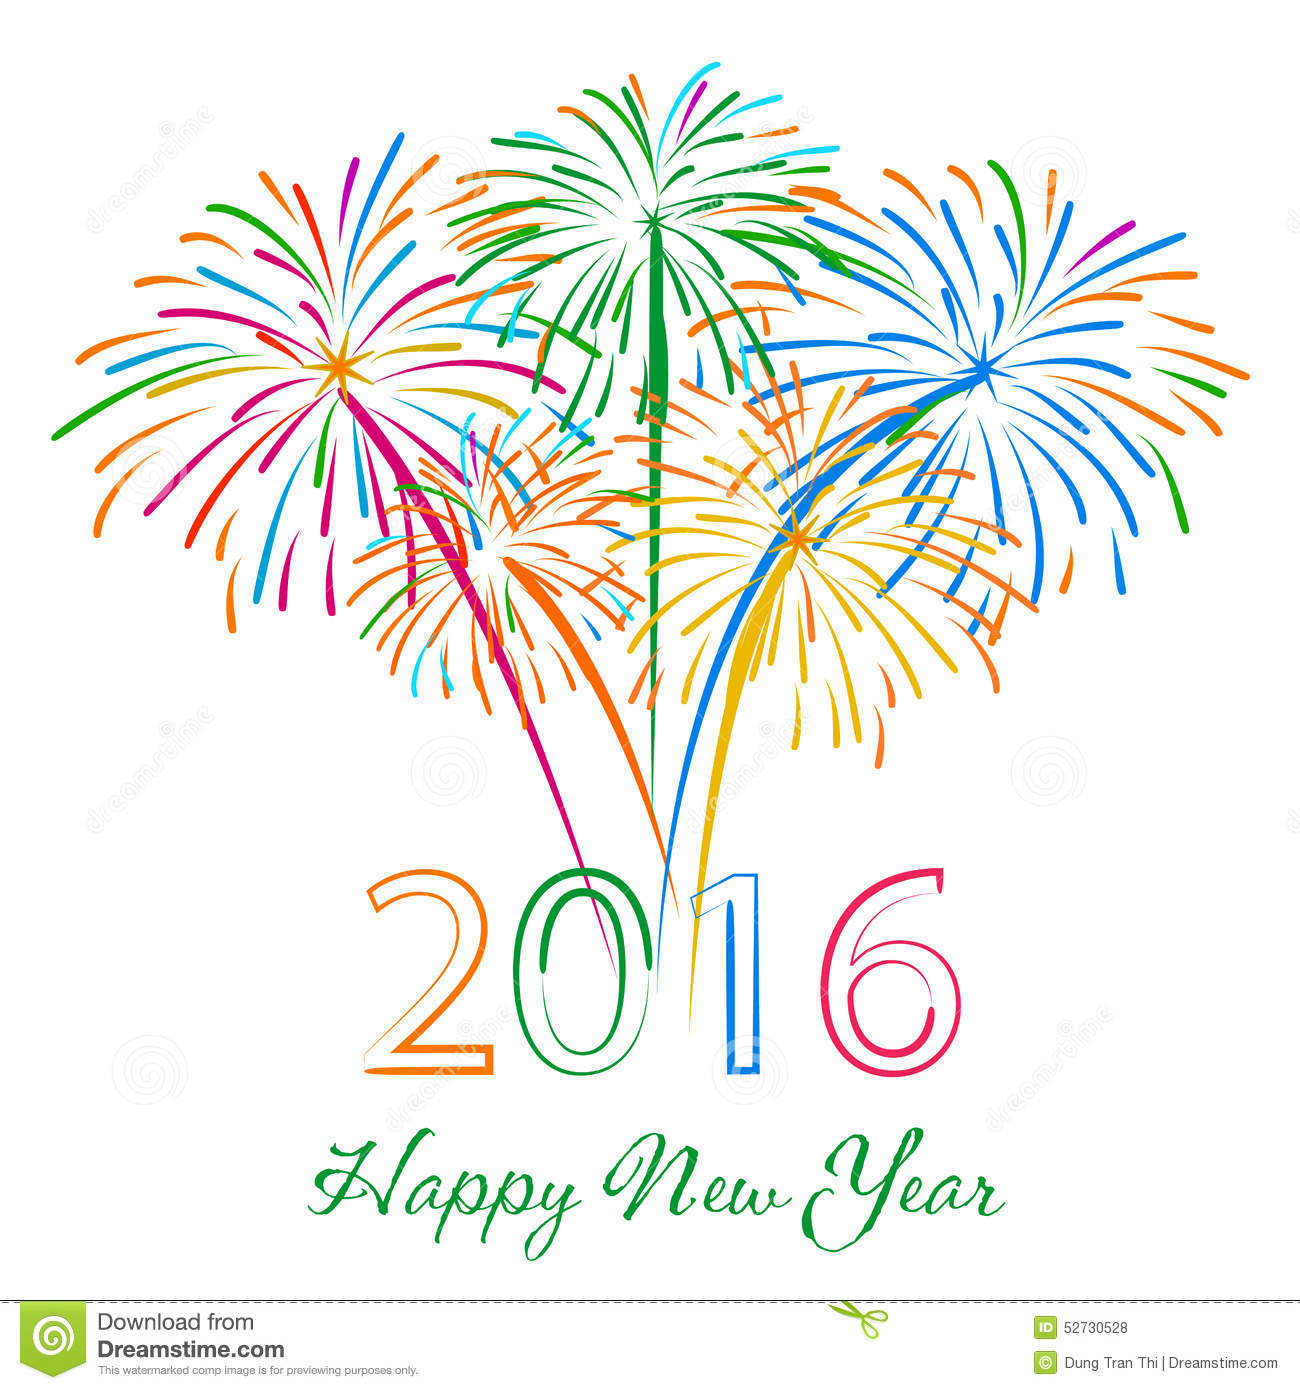 clip art new year backgrounds